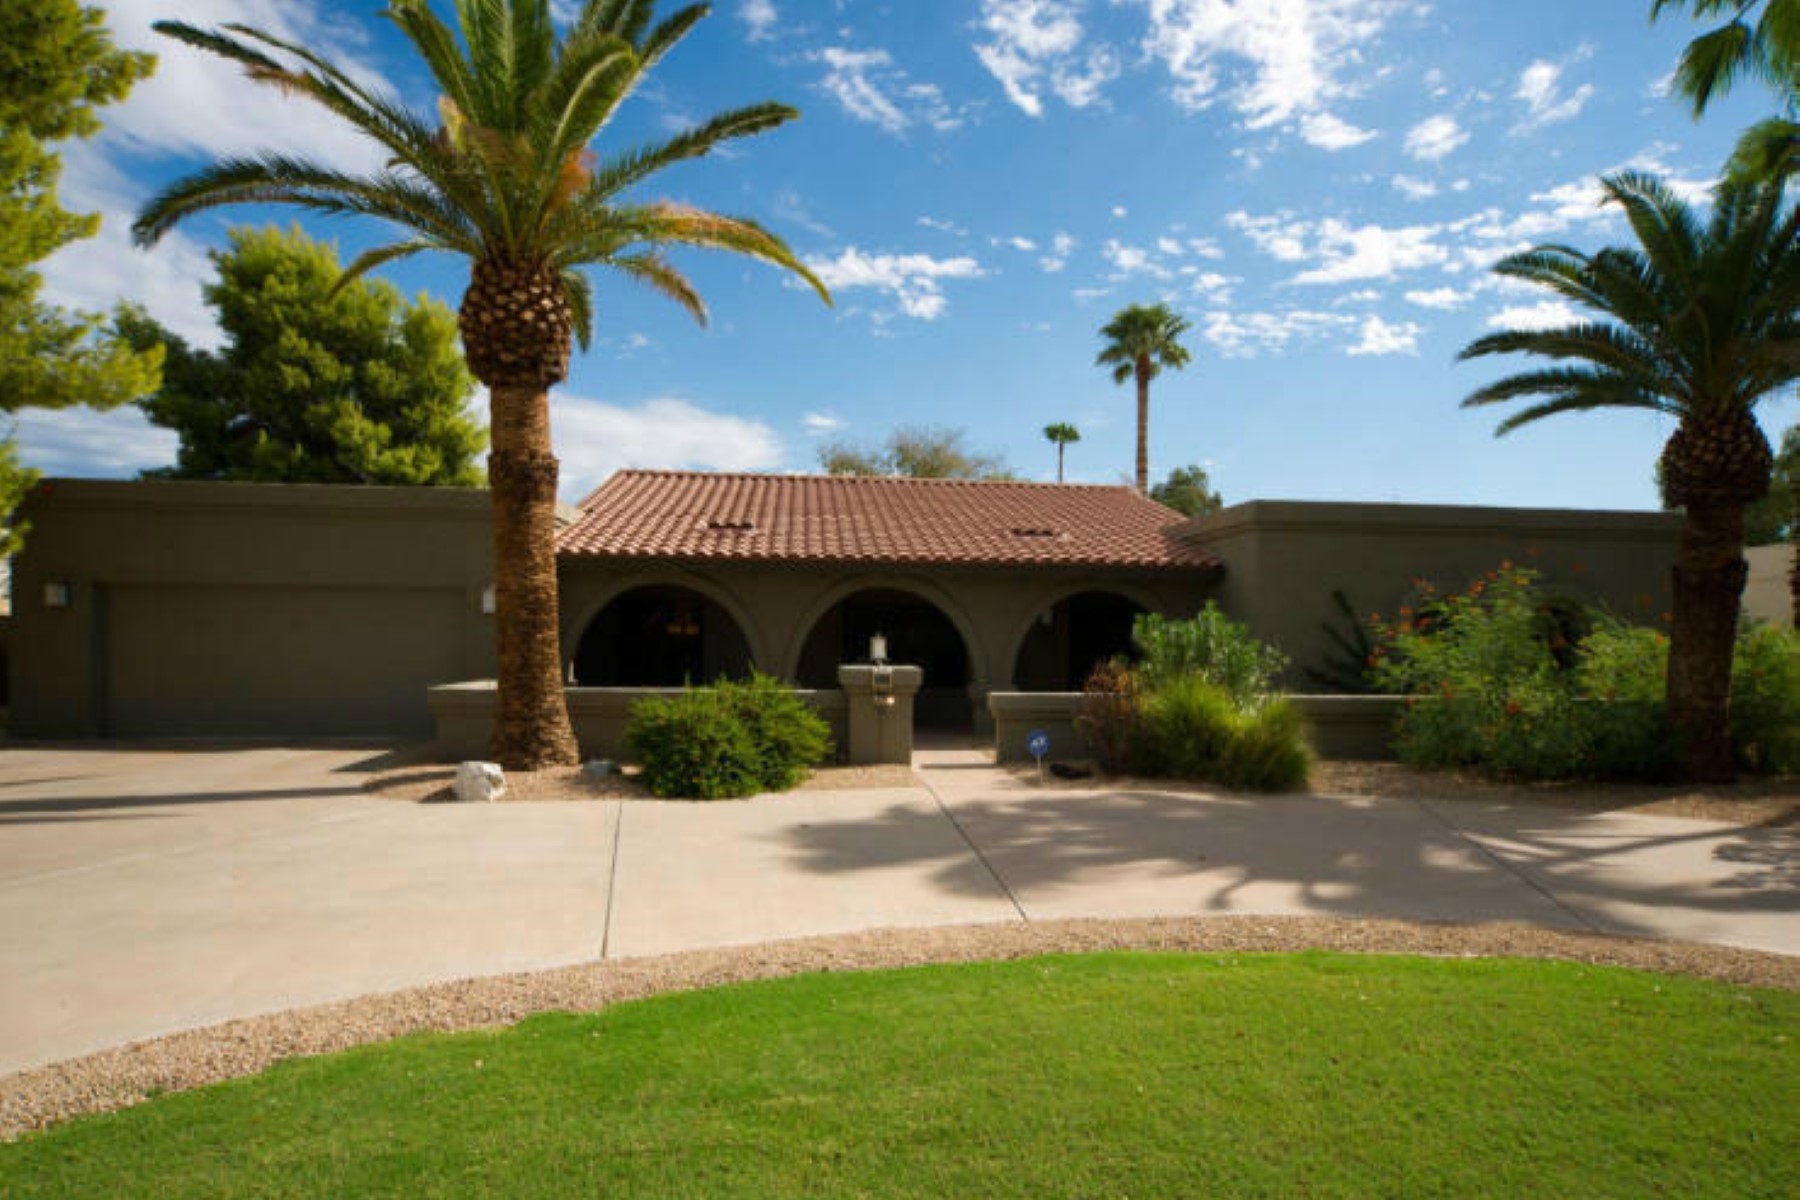 Property For Sale at Executive lease in one of Scottsdale's finest subdivisions, McCormick Ranch